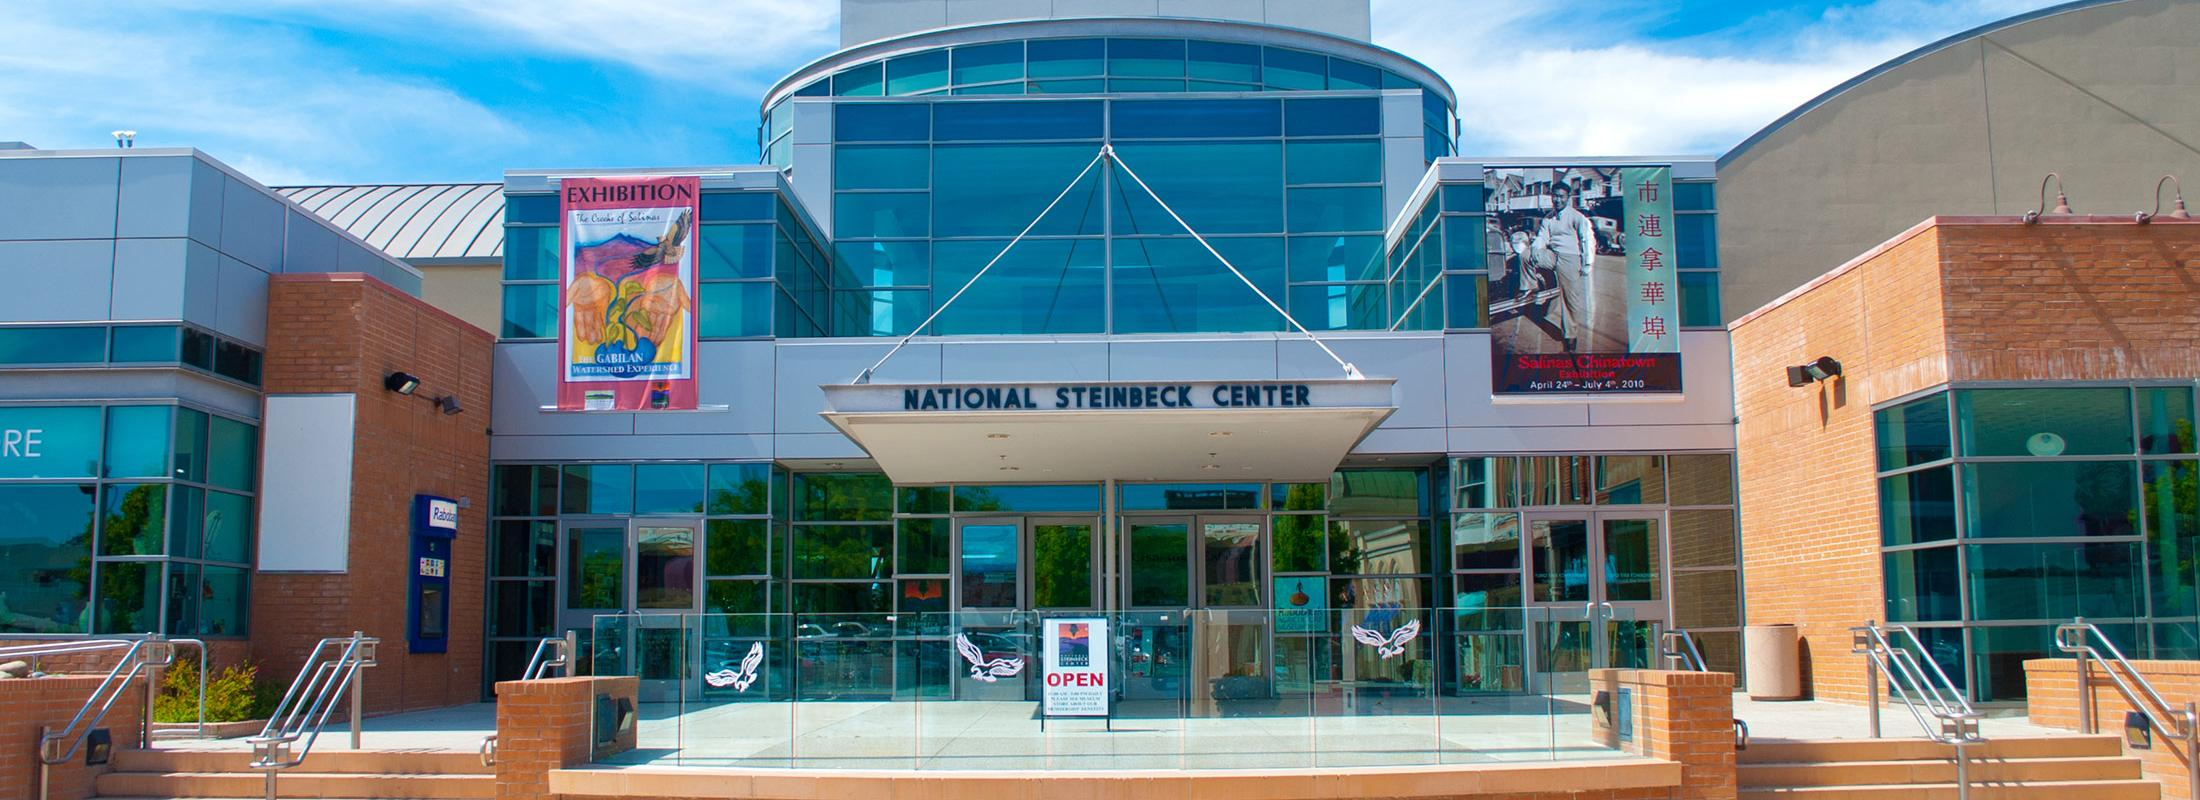 National Steinbeck Center, Salinas CA